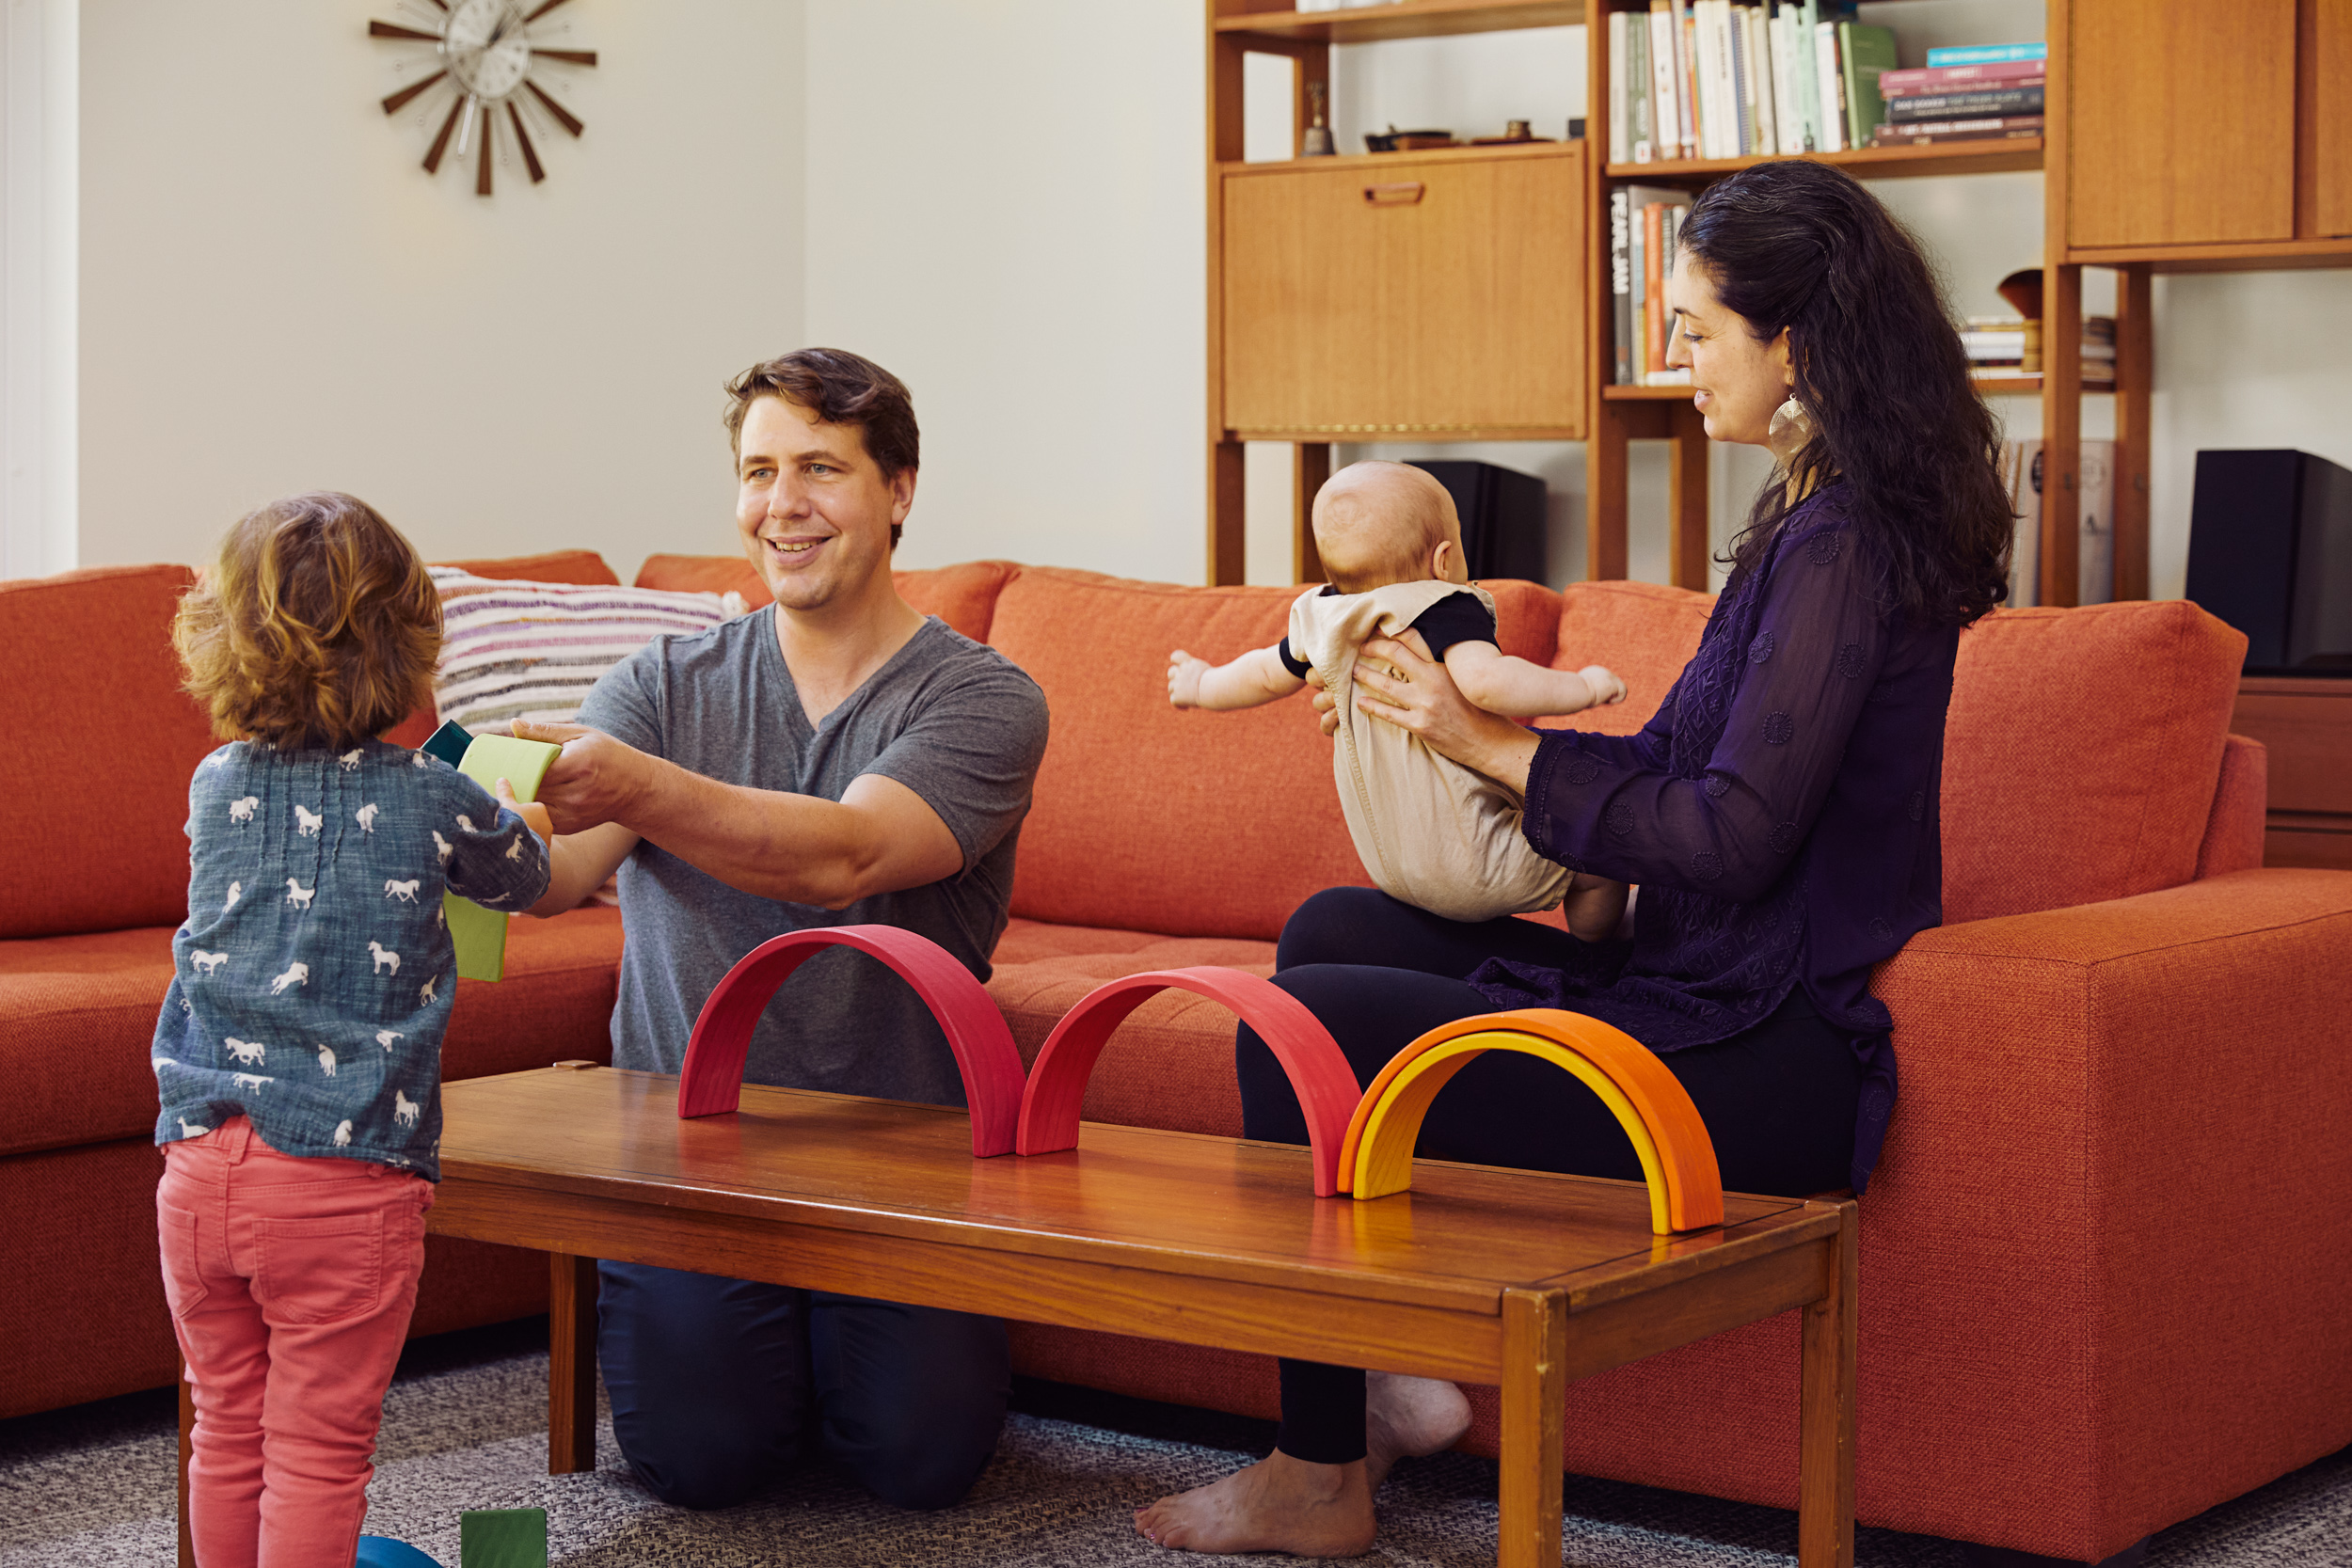 Norbert and Lisa play with their children in thie Quebec home. (Photograph by Sylvie Li)